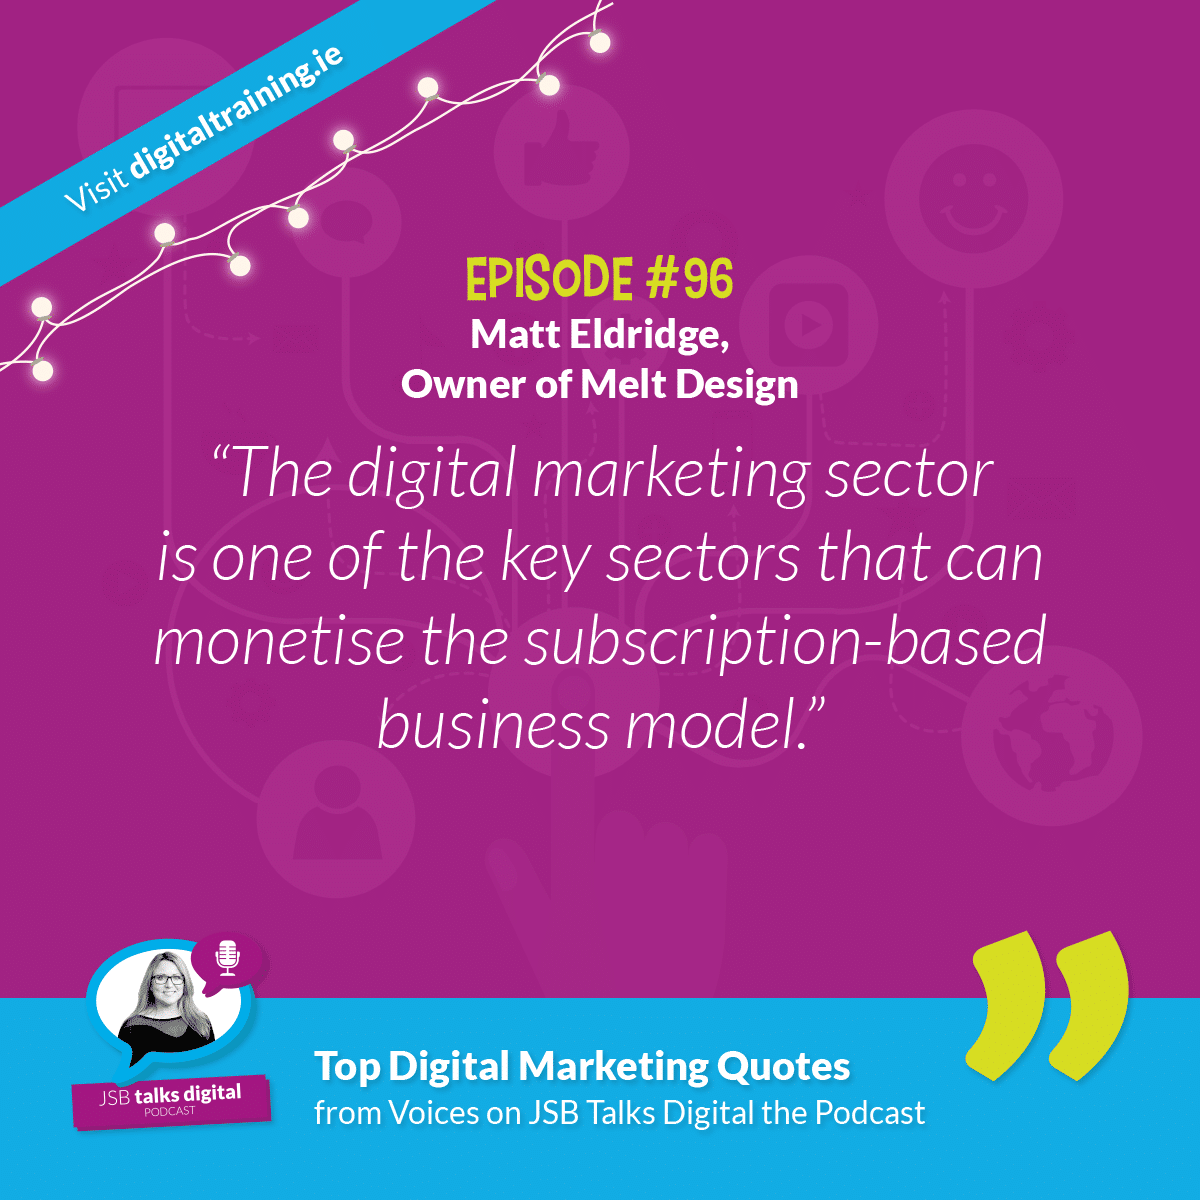 Matt Eldridge, Owner of Melt Design - Quote